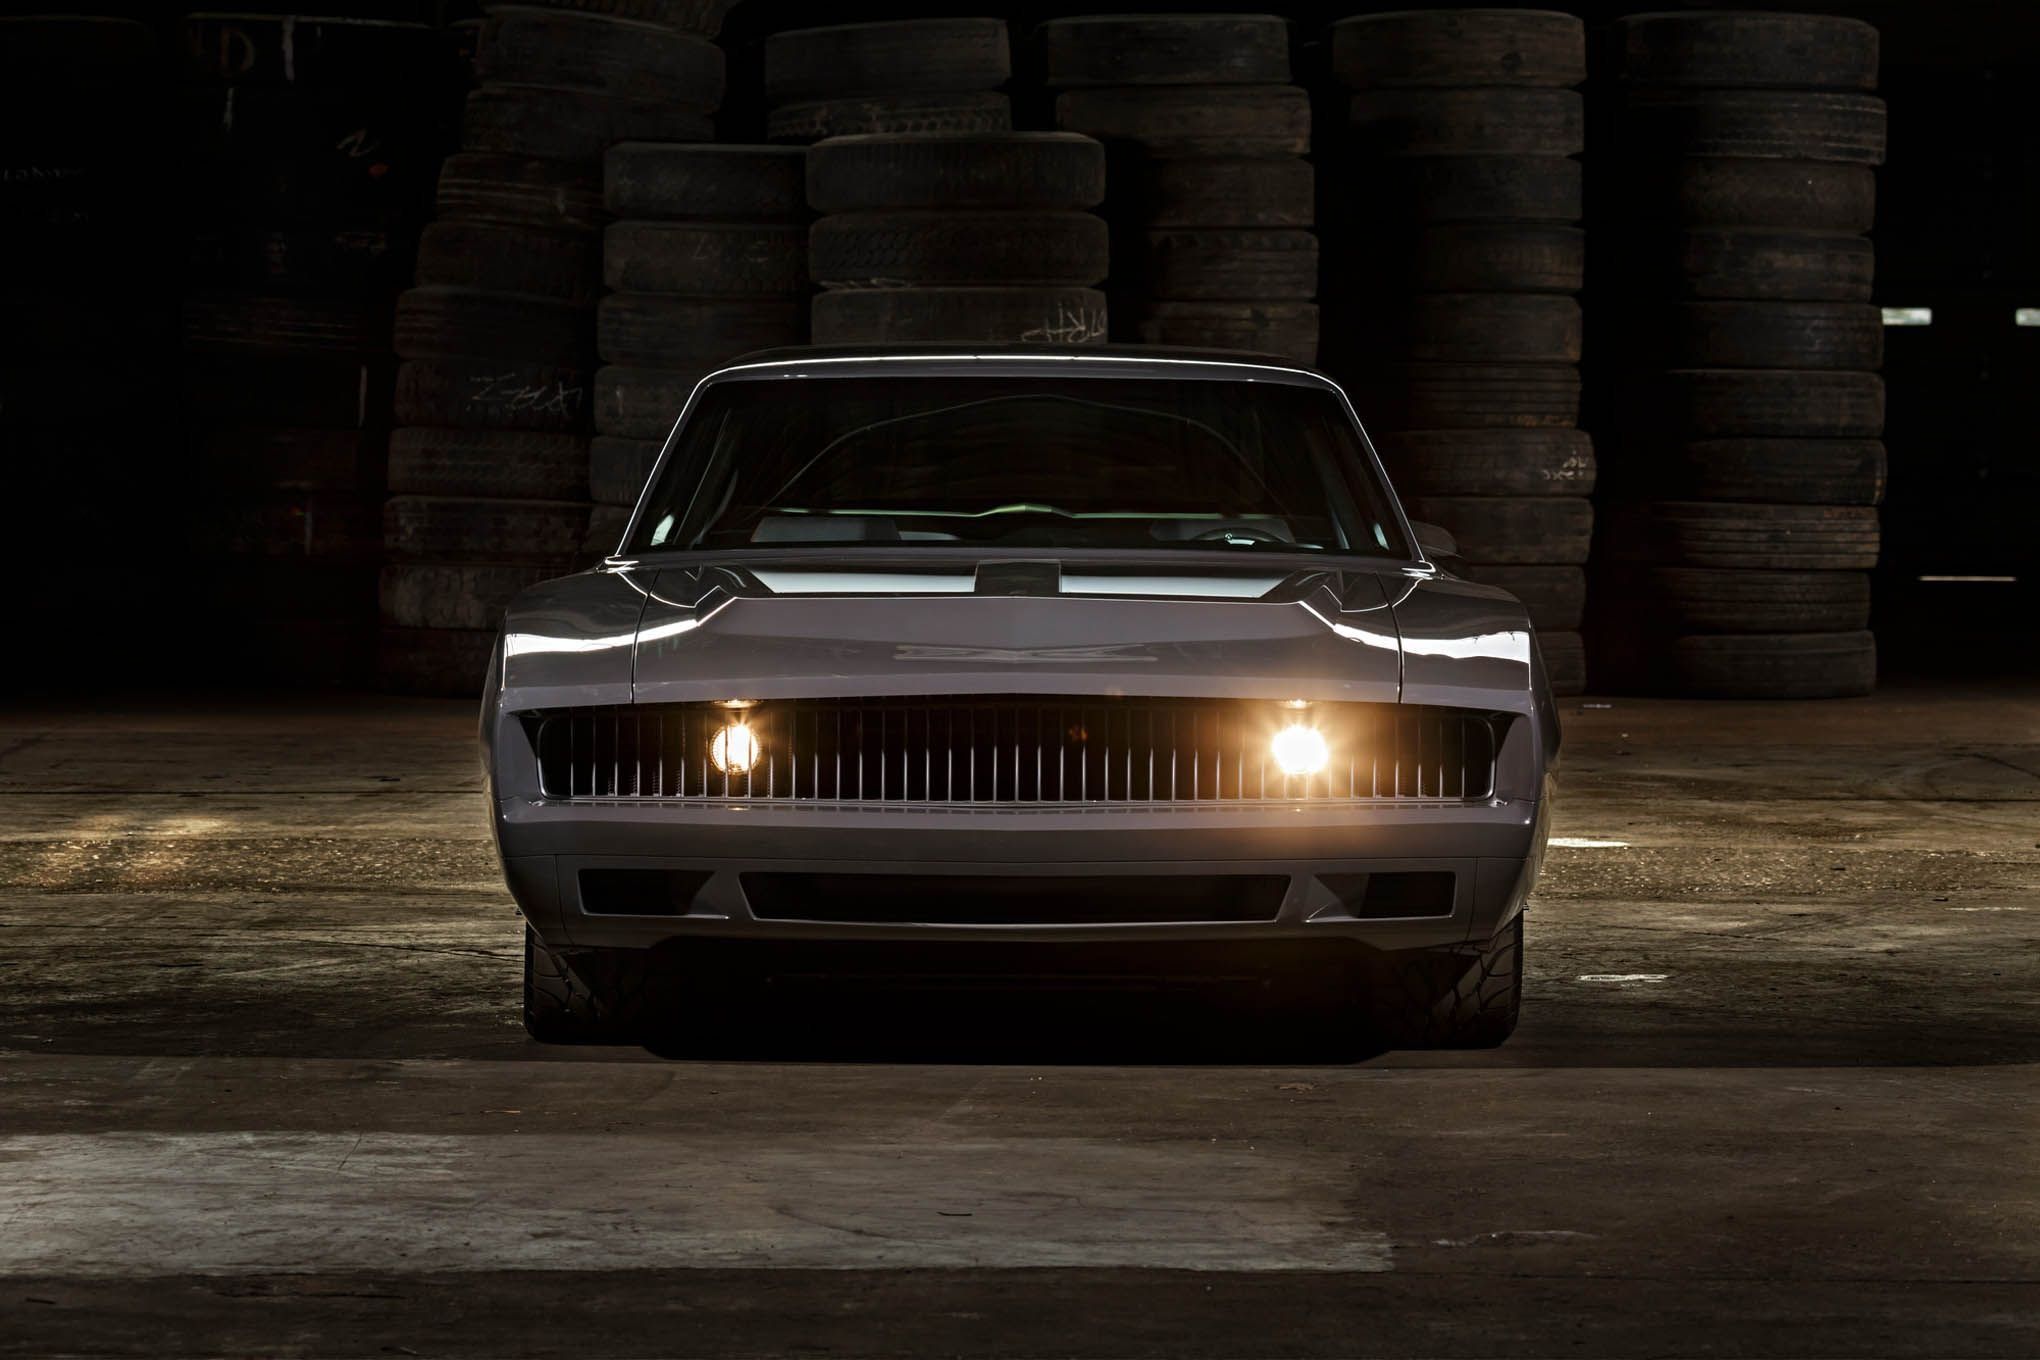 Old Car Wallpaper Download 1968 Dodge Charger Cars Modified Wallpaper 2040x1360